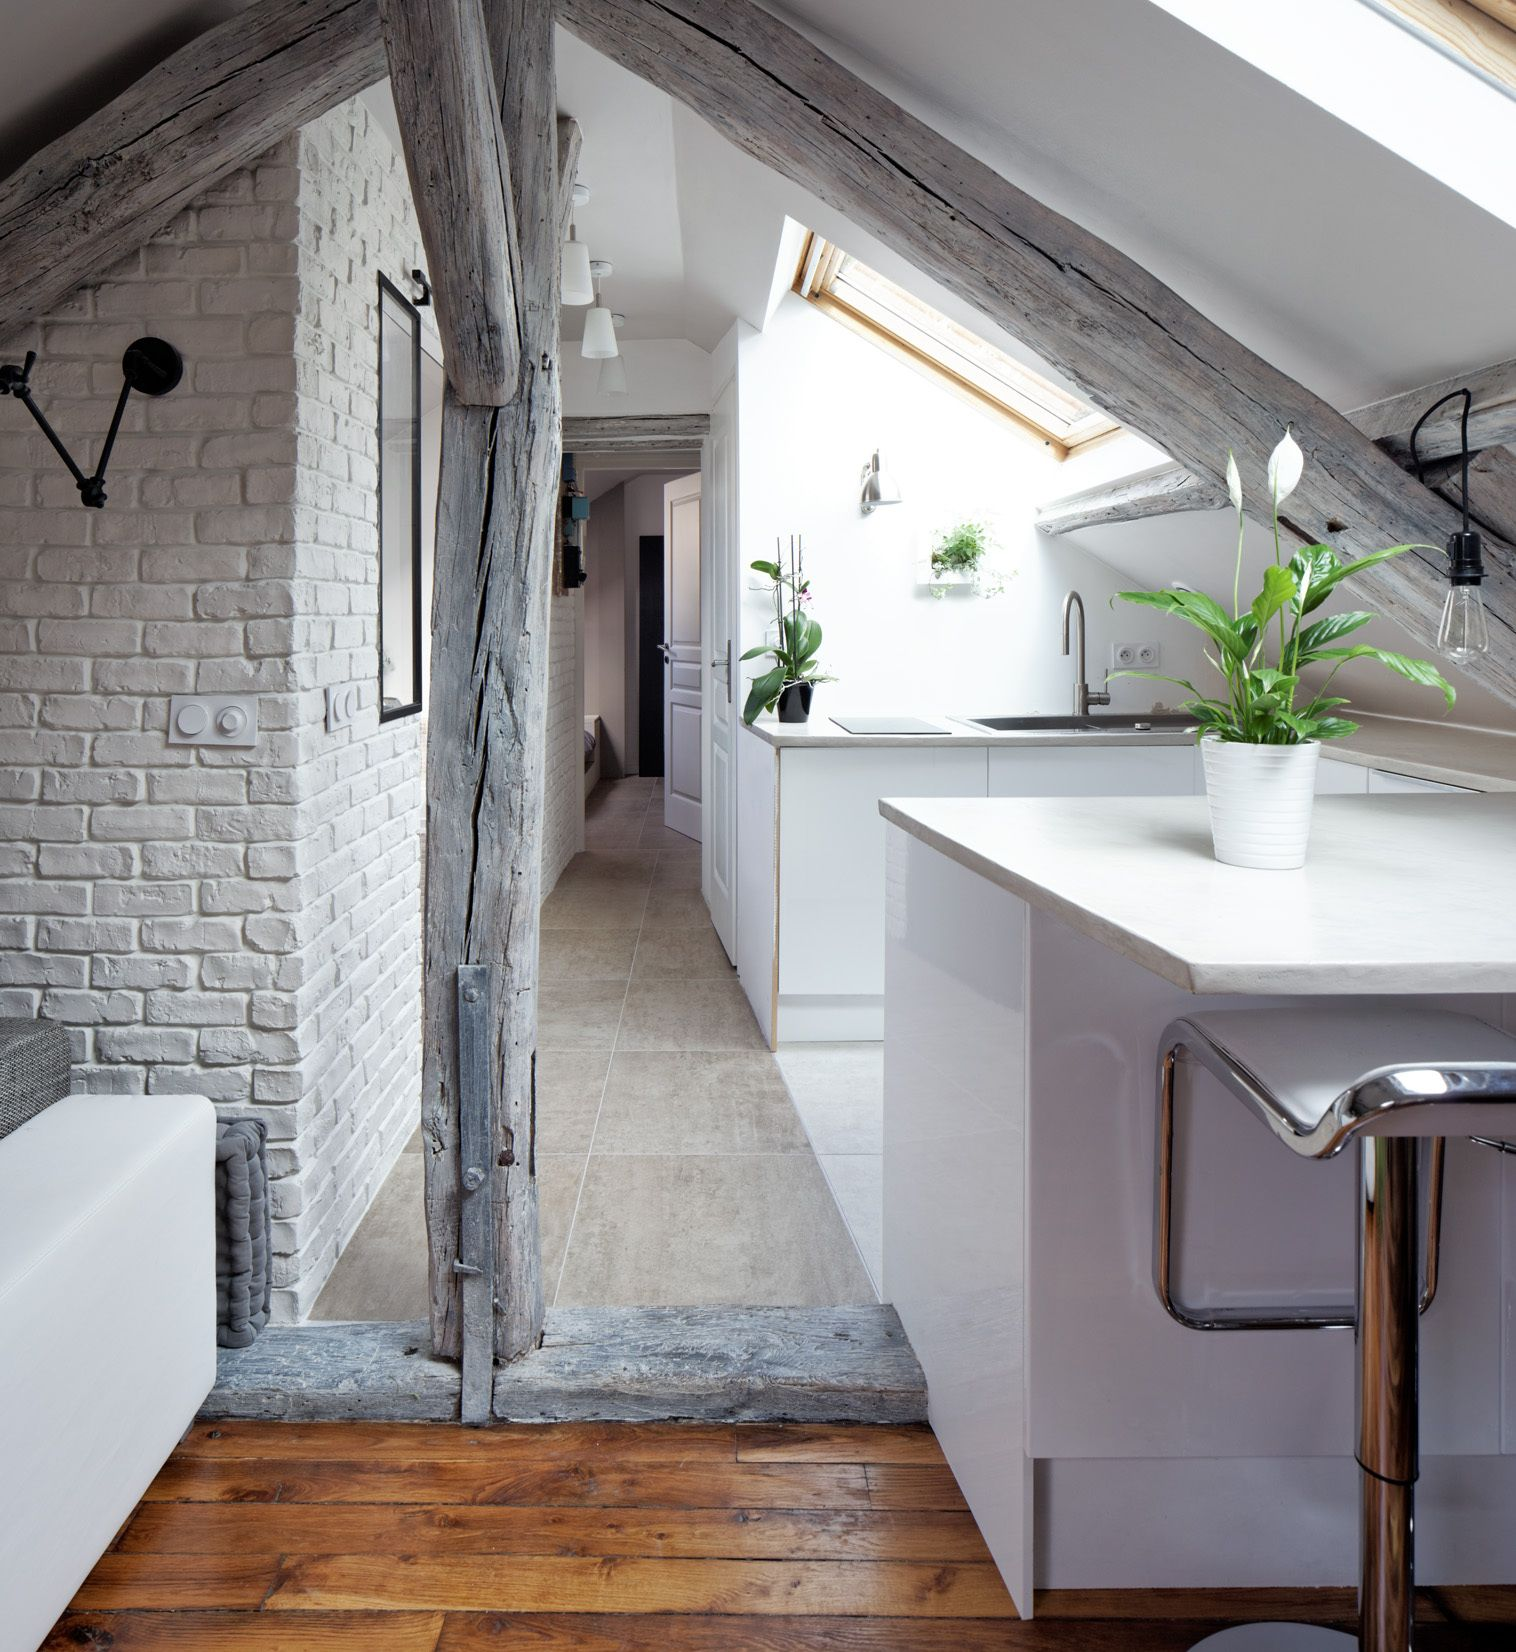 Kitchen Renovation Apartment Therapy: Gallery Of Living Under The Roof / Prisca Pellerin